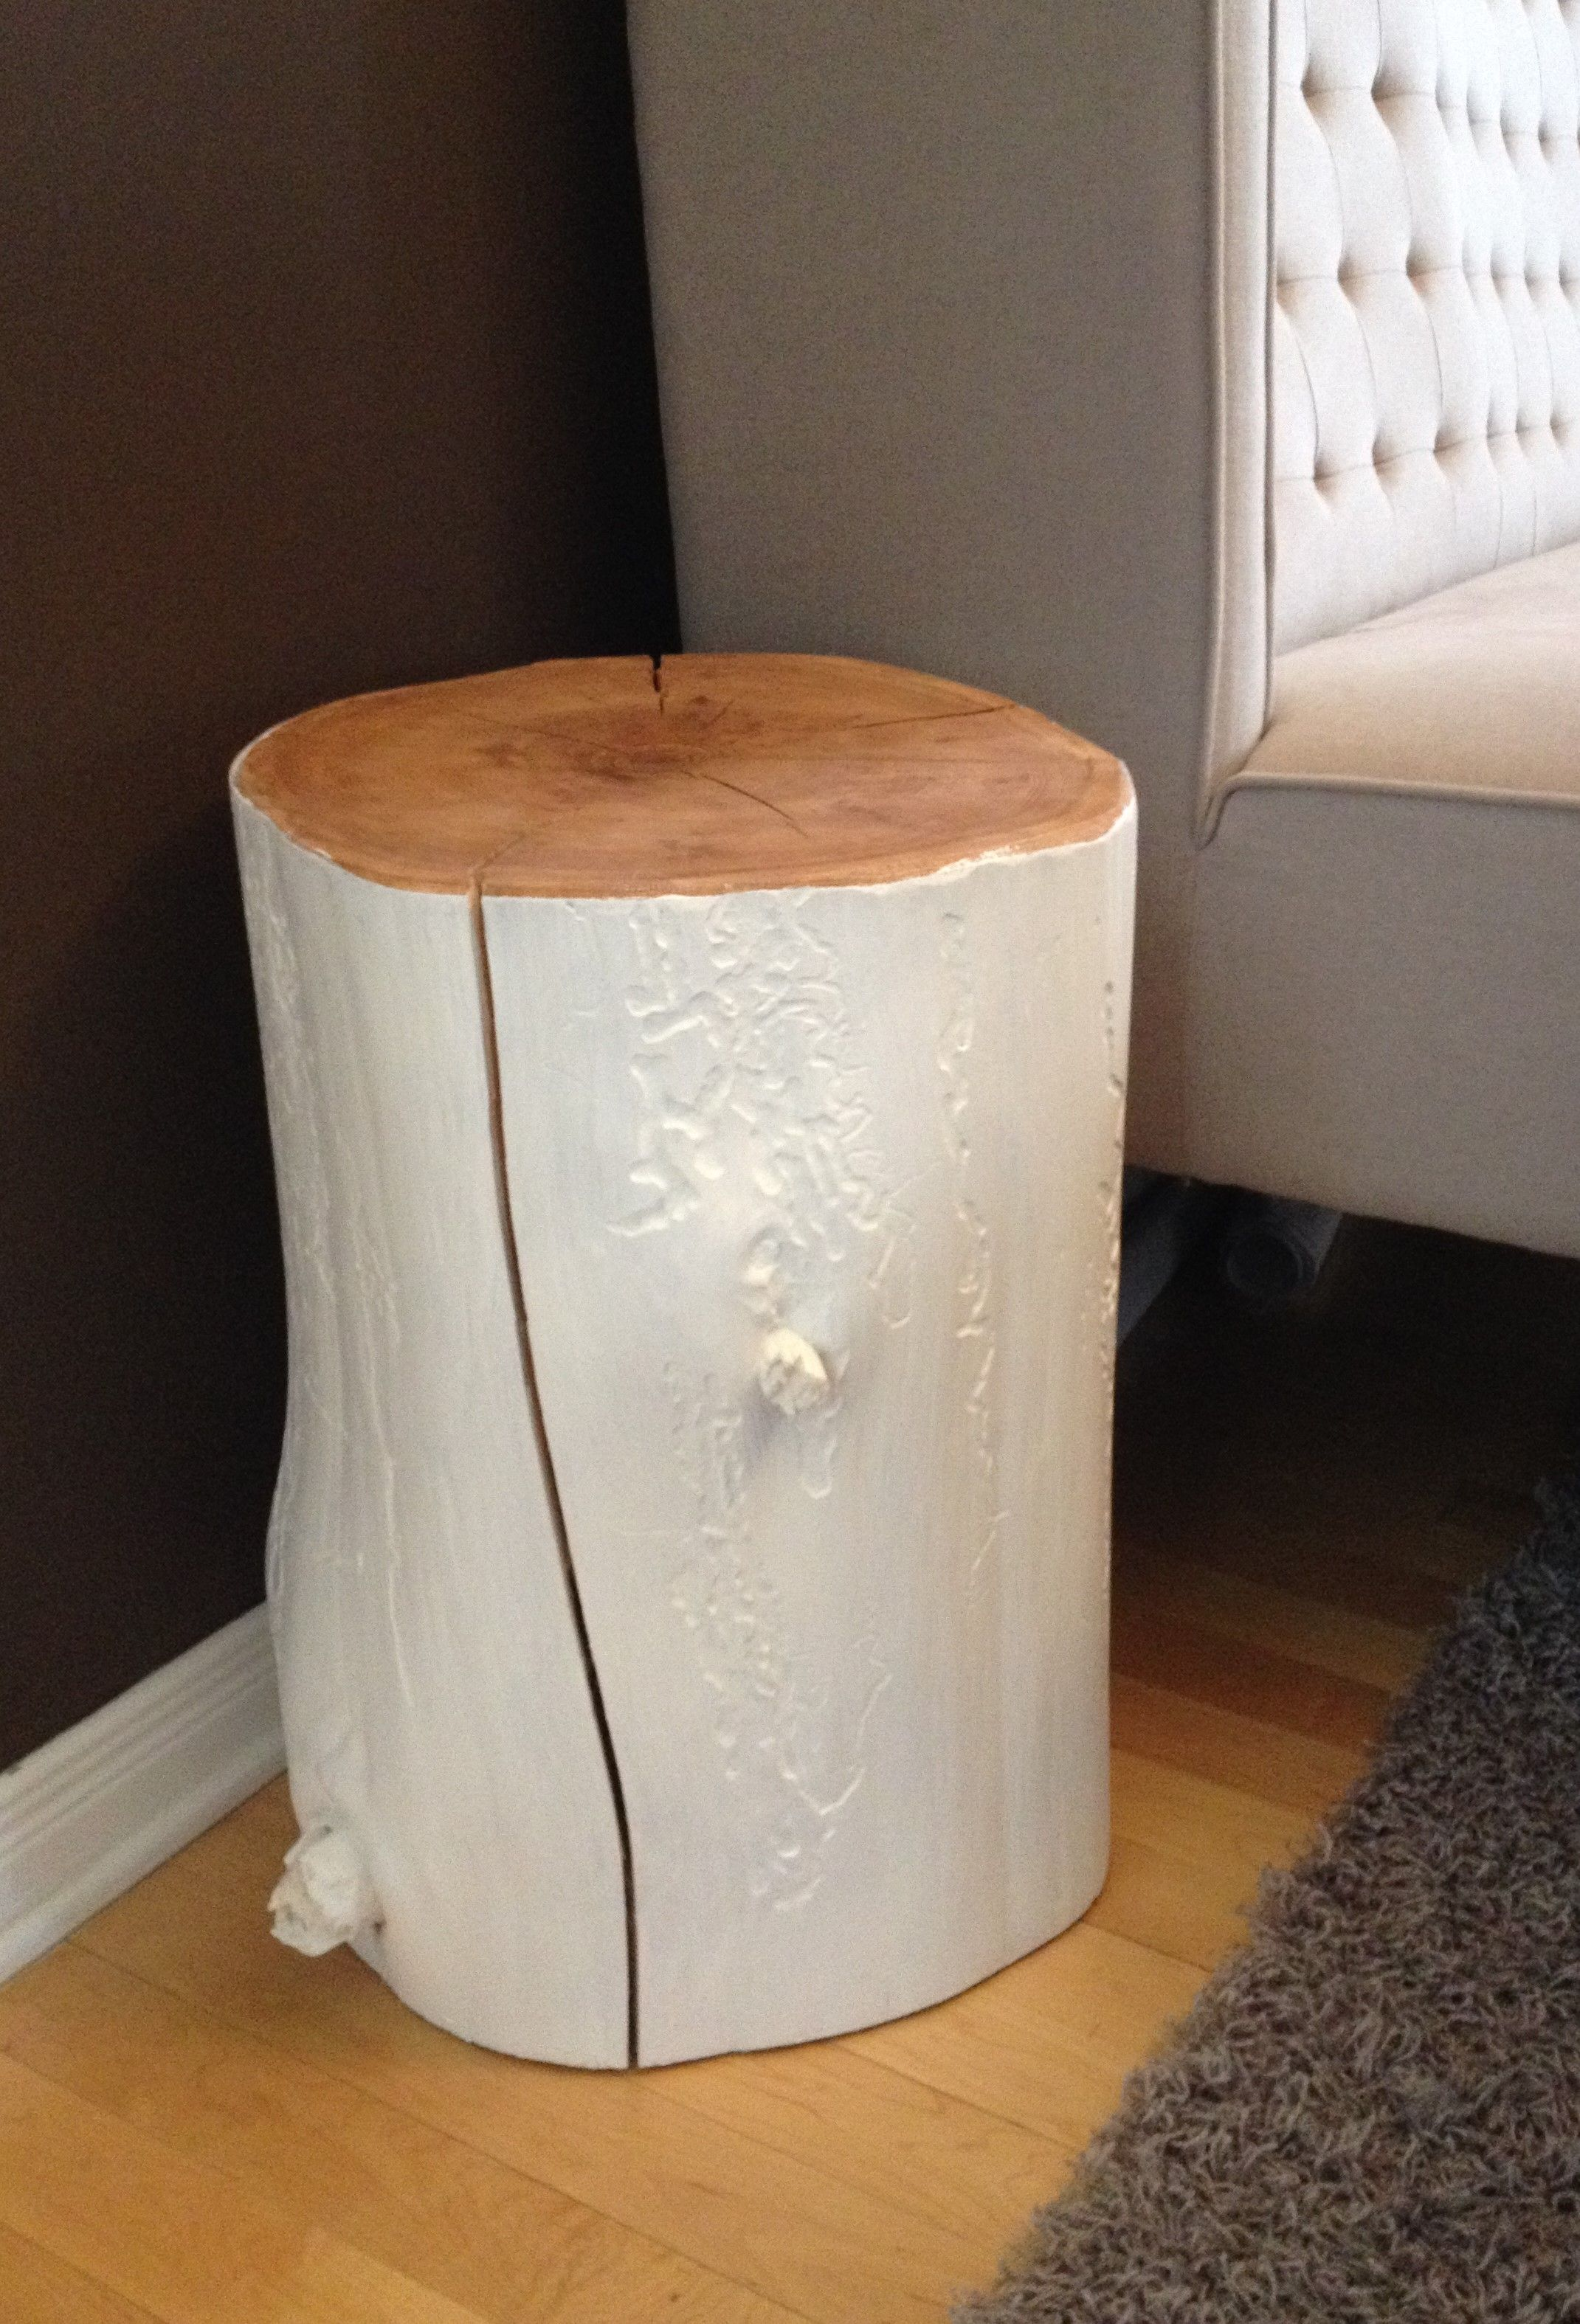 Tree stump side table - Find This Pin And More On Tree Stump Tables Stump Side Tables Root Coffee Tables Tree Root Coffee Table Live Edge Coffee Tables Wood Metal Benches Log